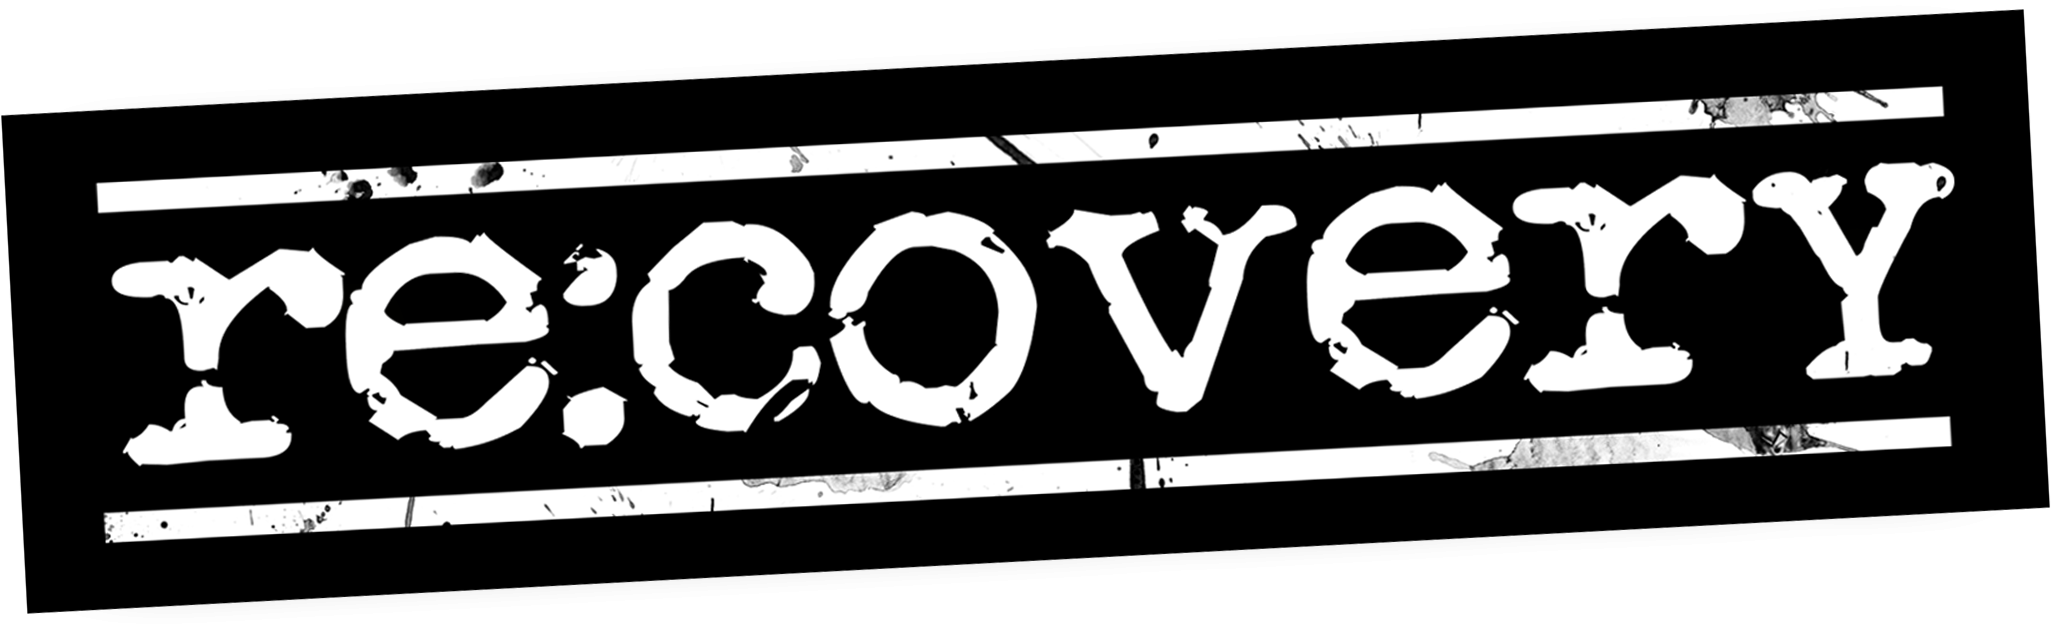 re:covery